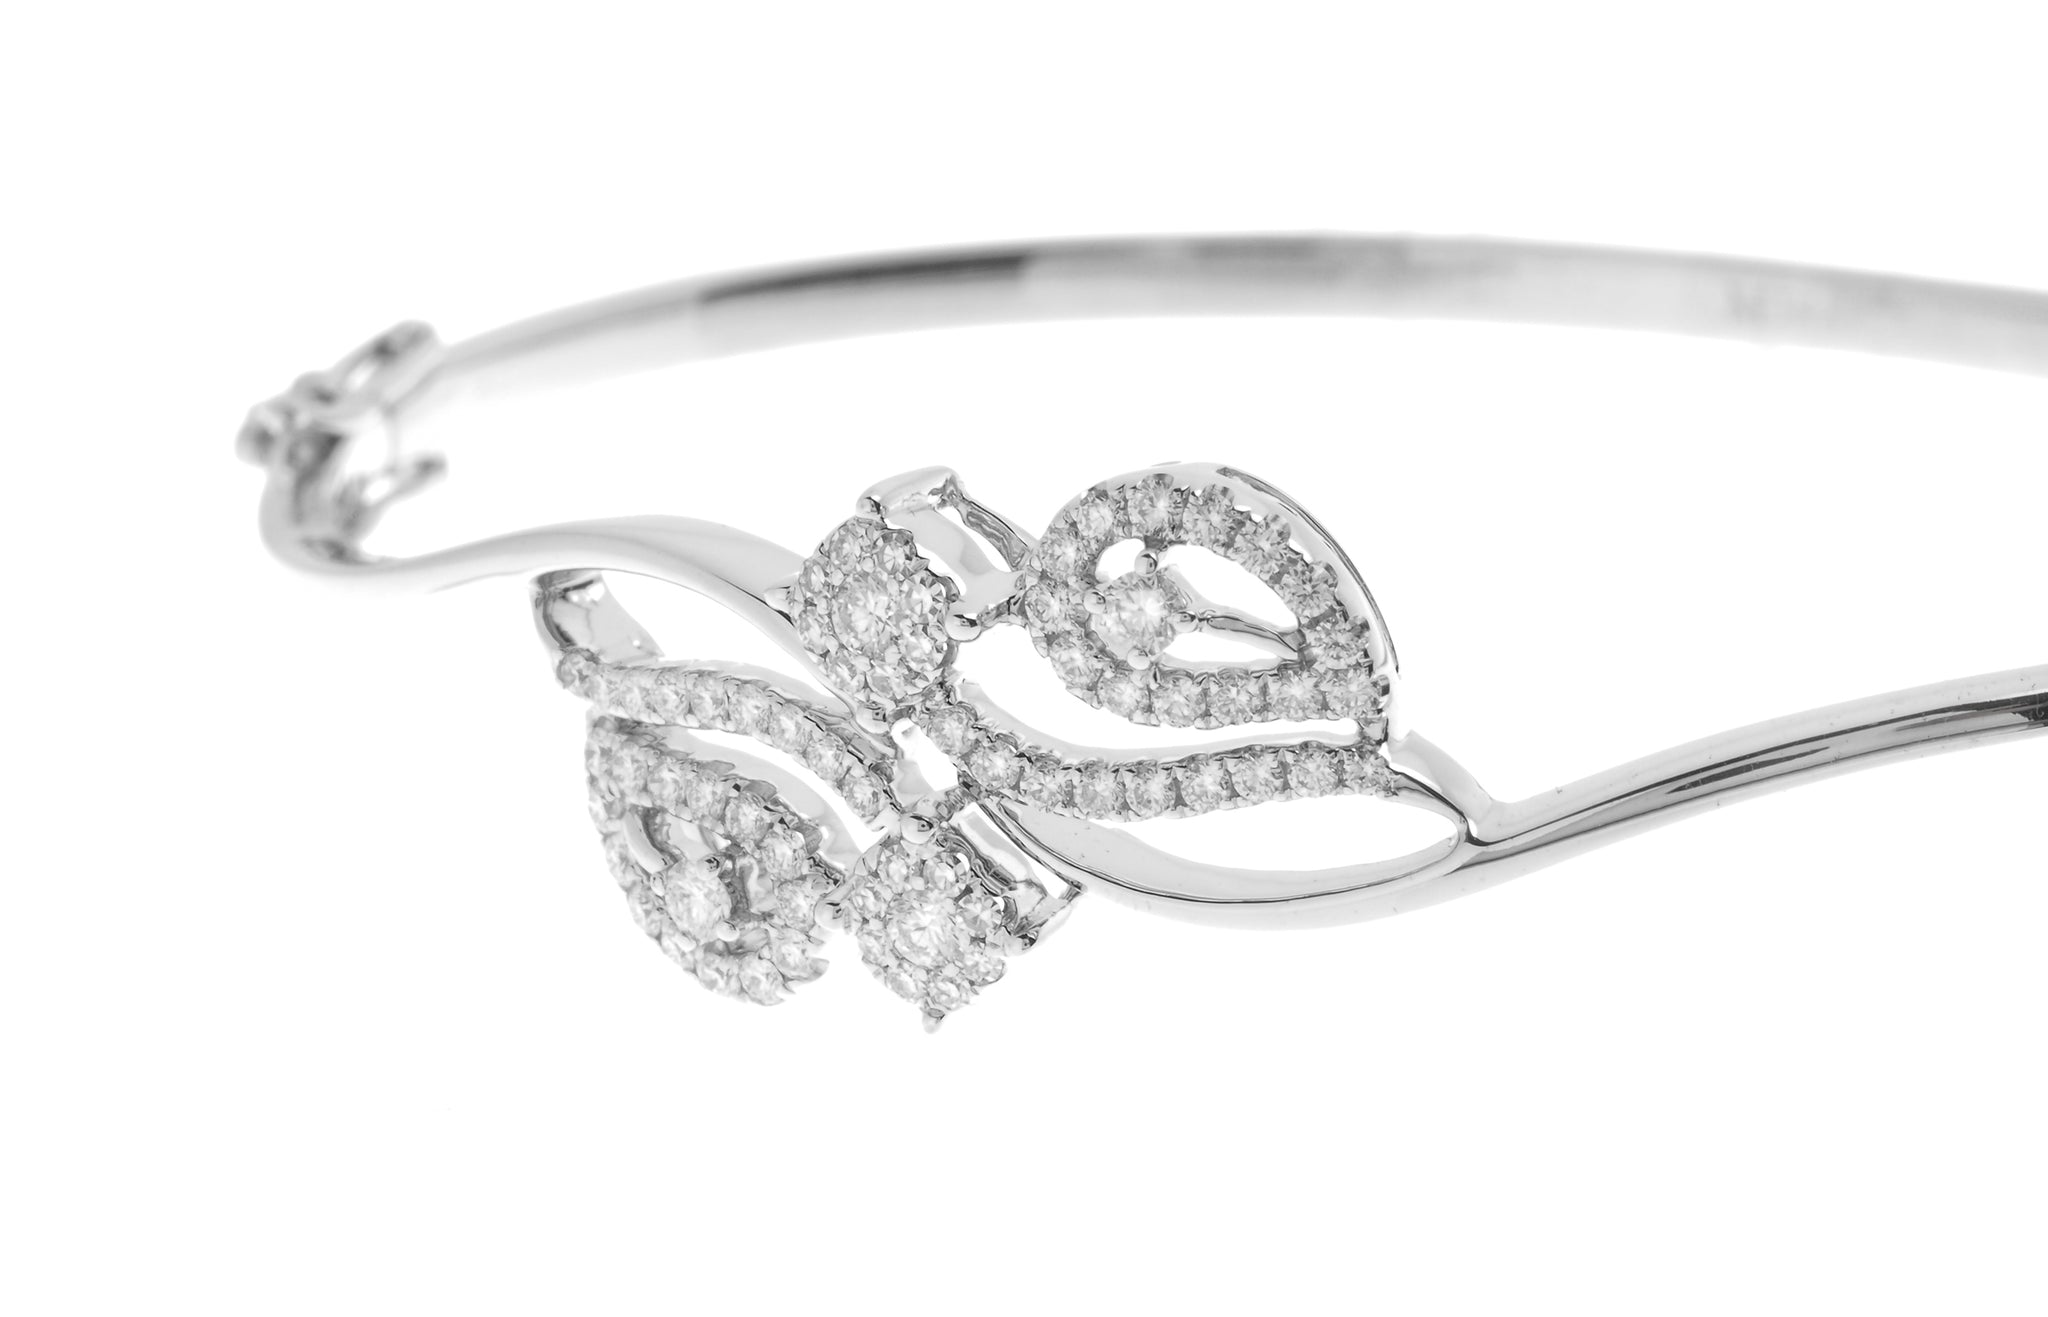 18ct White Gold Diamond Bangle with clasp (MCS2723) - Close Up